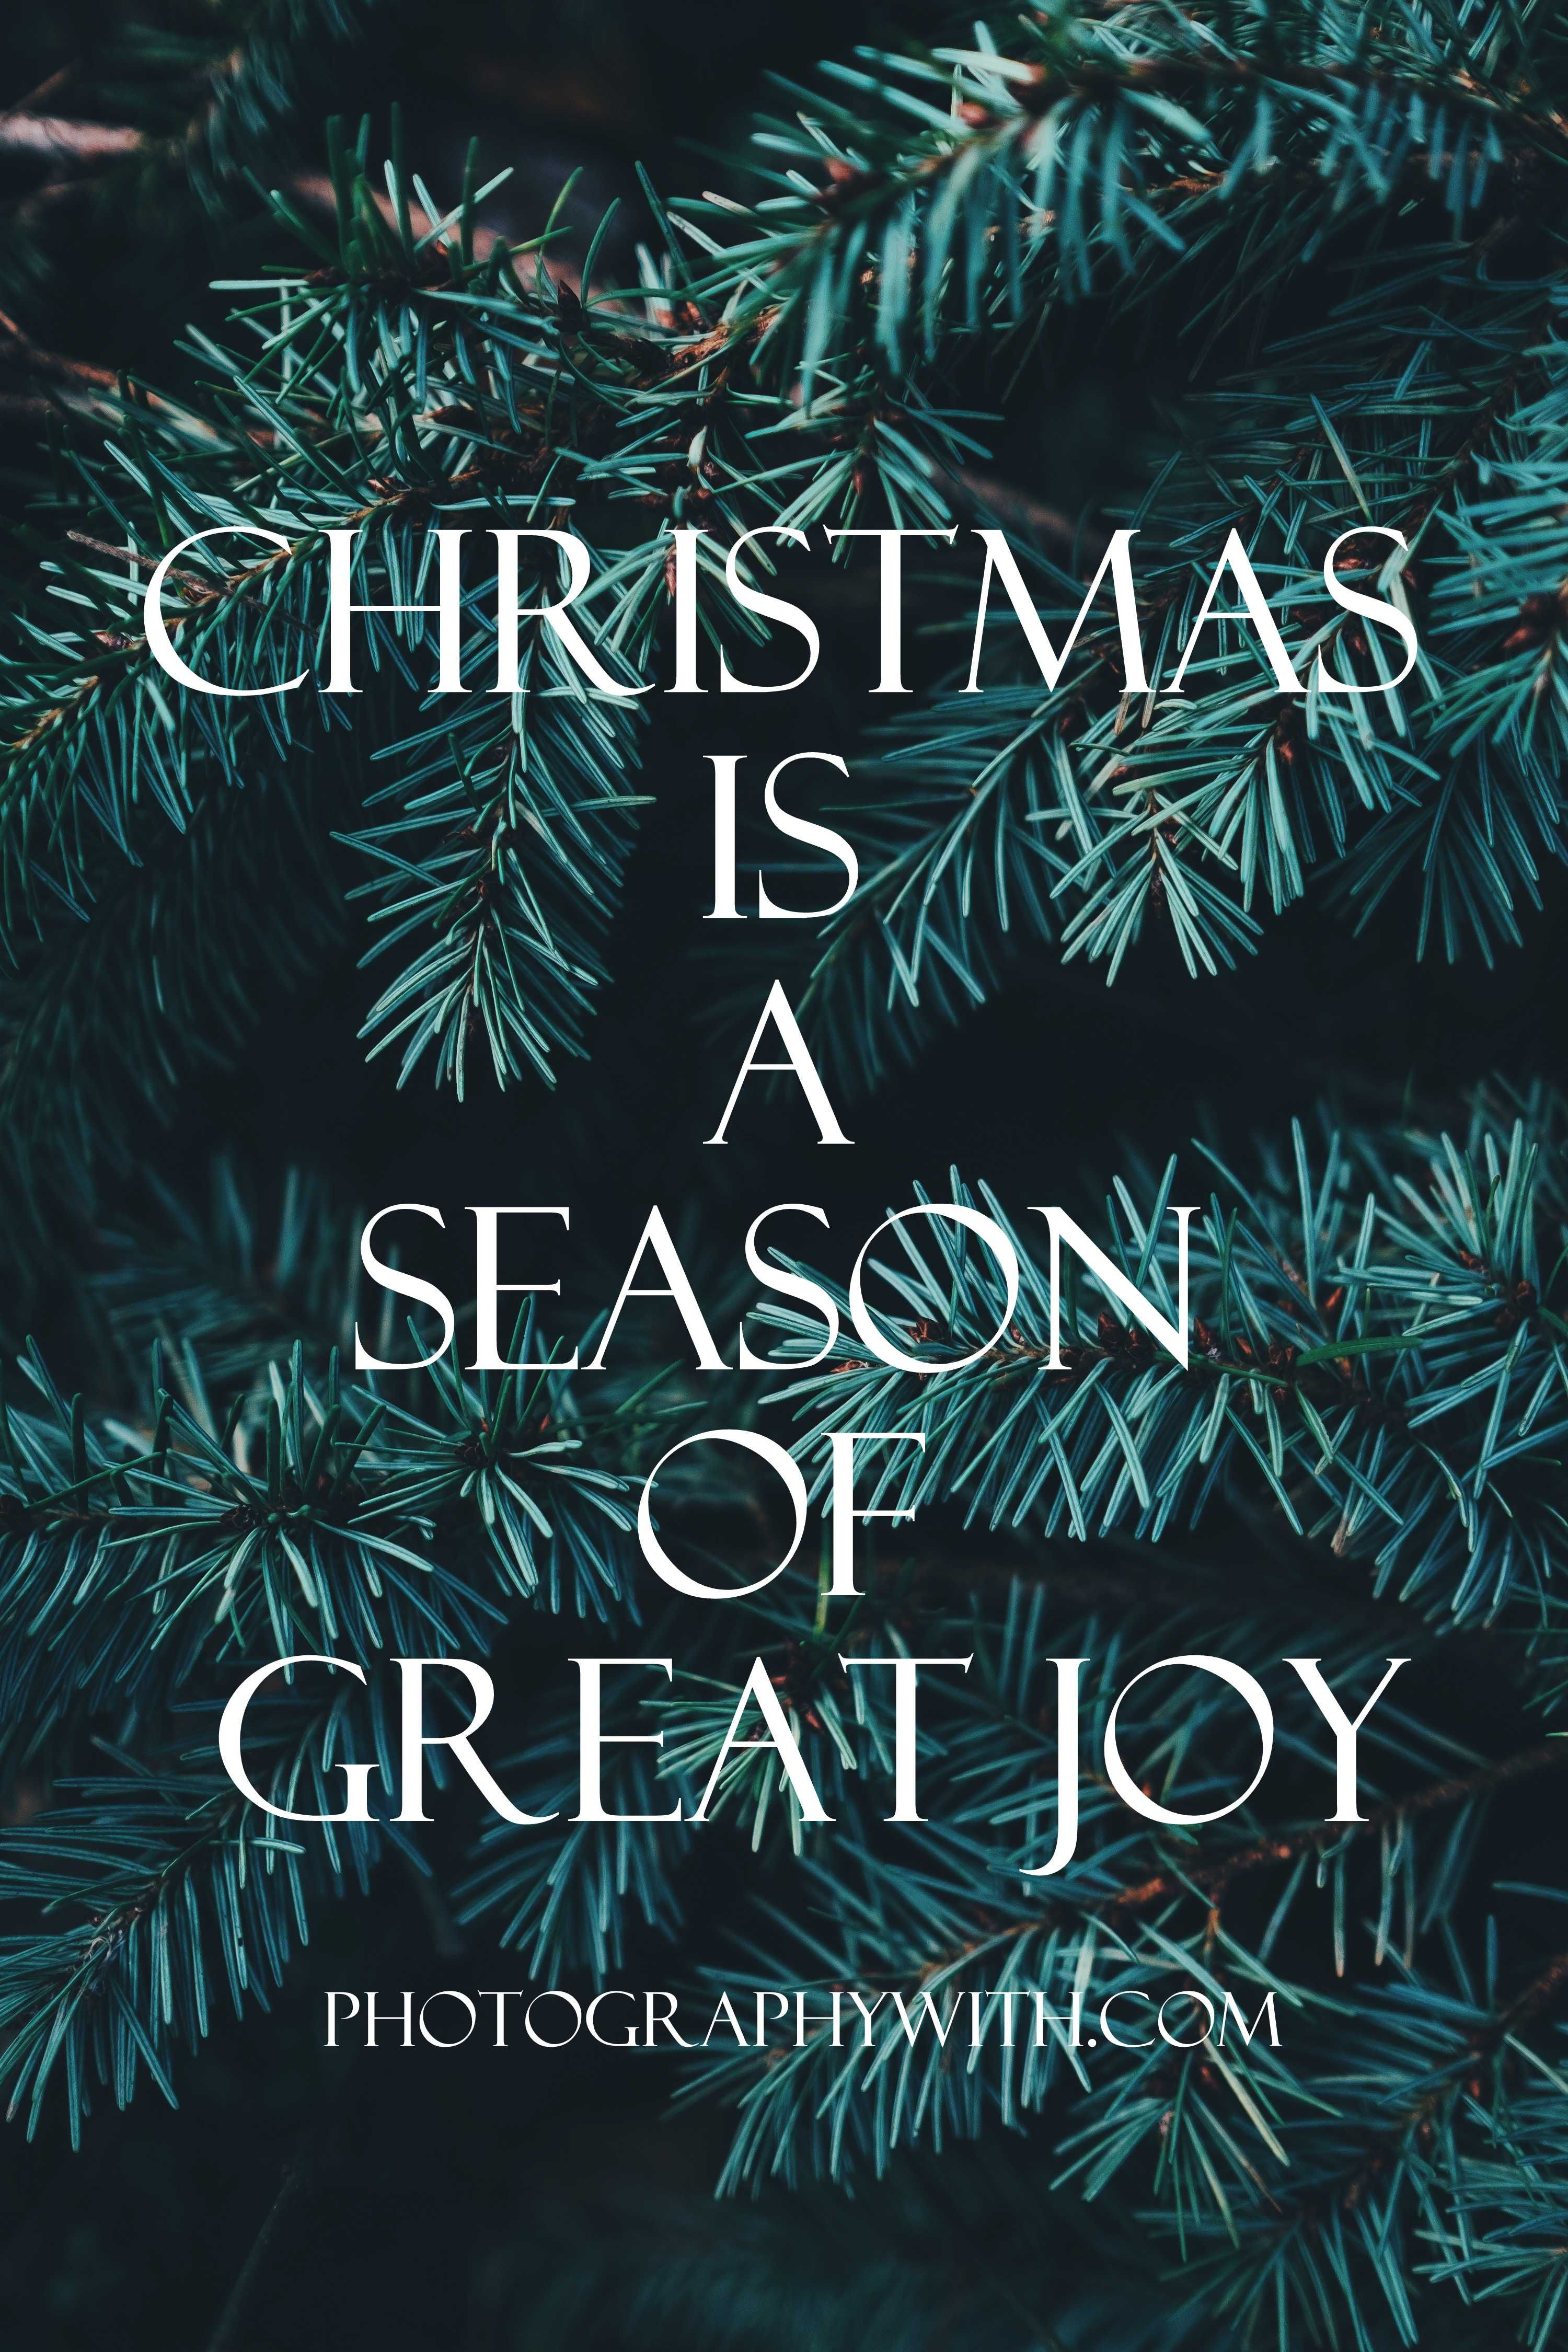 If You Are Looking For Best Christmas Greetings Messageso Here Is